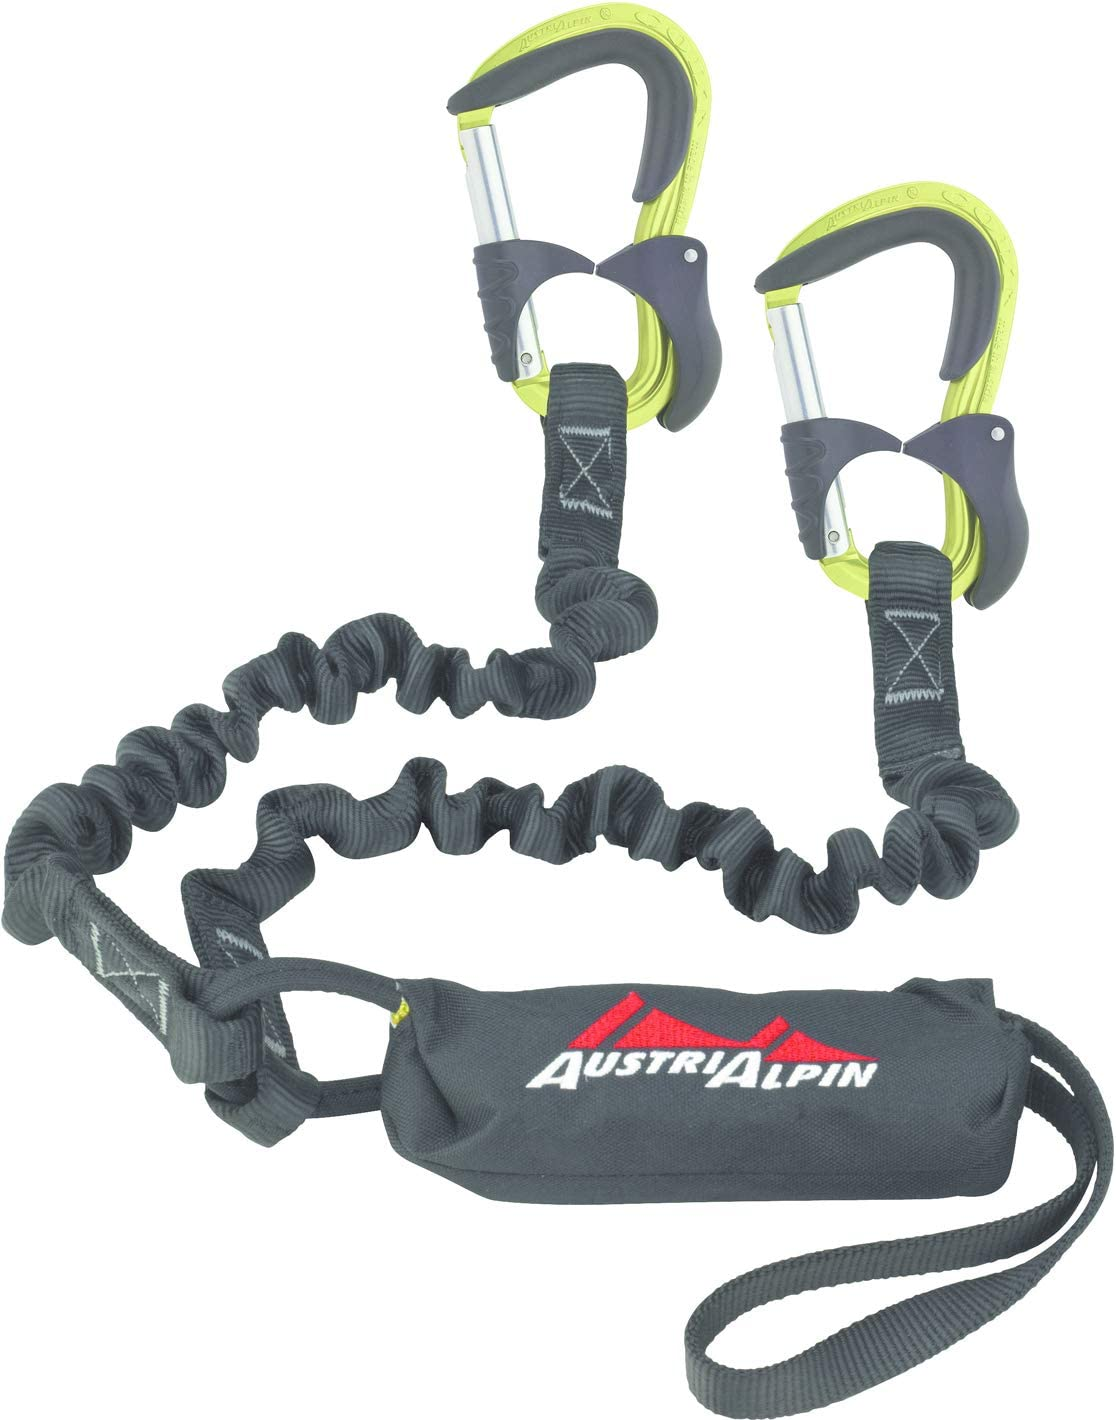 AustriAlpin Colt EVO - Kit vía ferrata - Negro 2019: Amazon.es ...